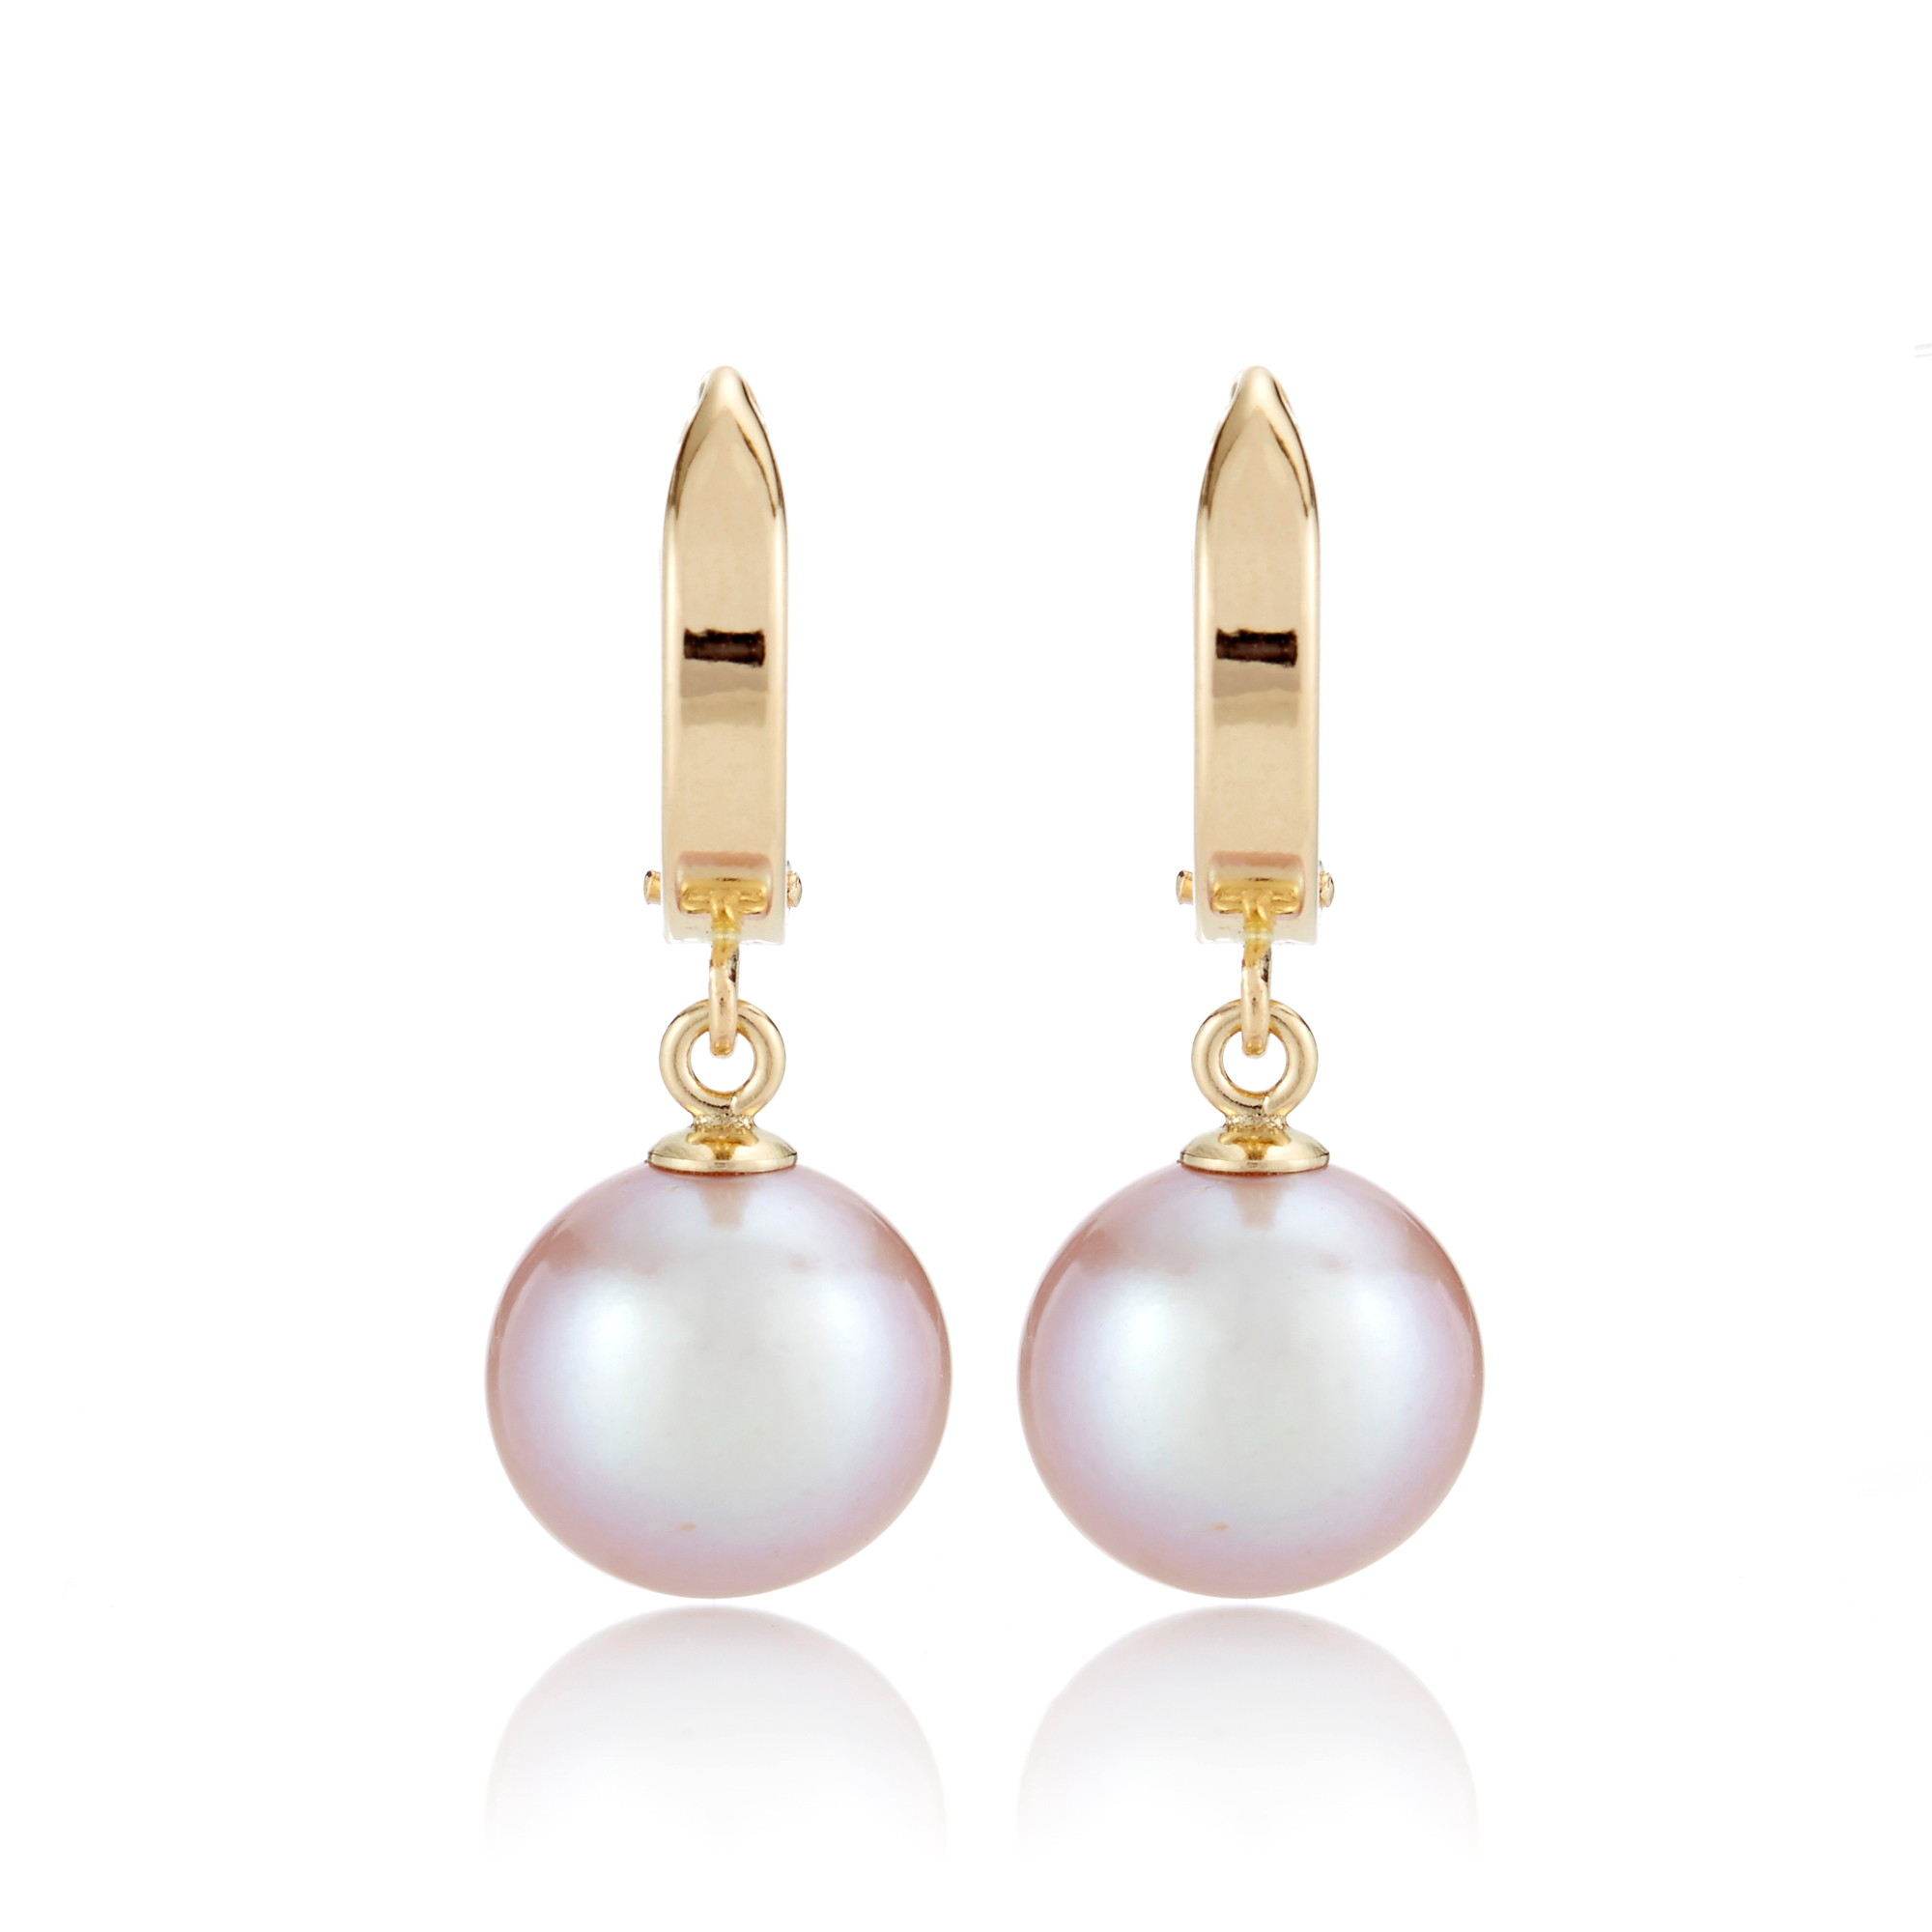 Gump's Gold Hoop & Pink Freshwater Cultured Pearl Drop Earrings